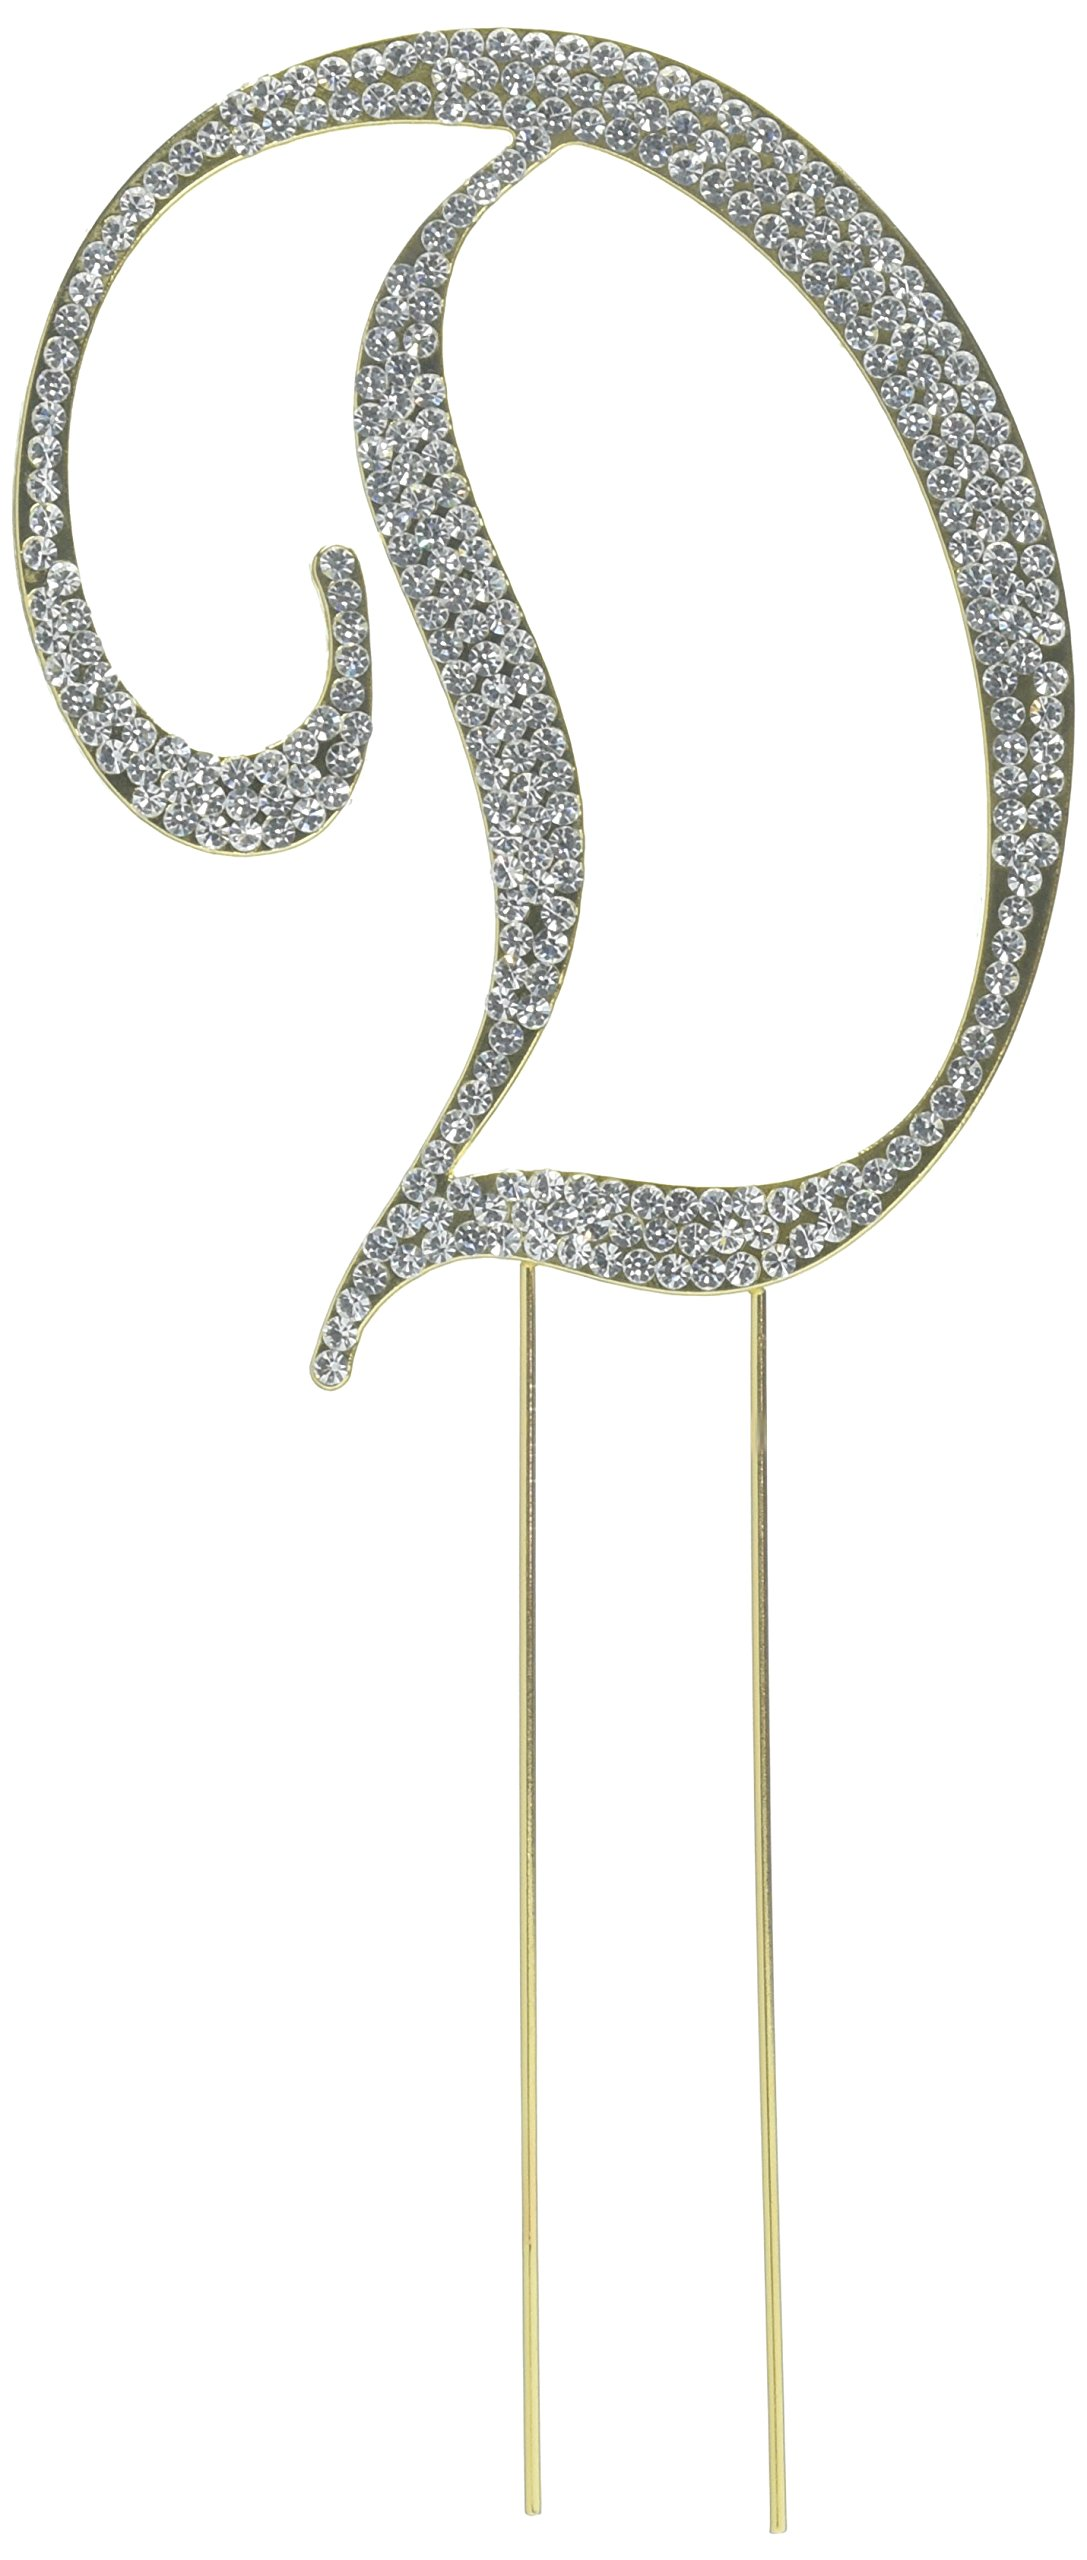 Unik Occasions Sparkling Collection Crystal Rhinestone Monogram Cake Topper - Letter D, Large, Gold